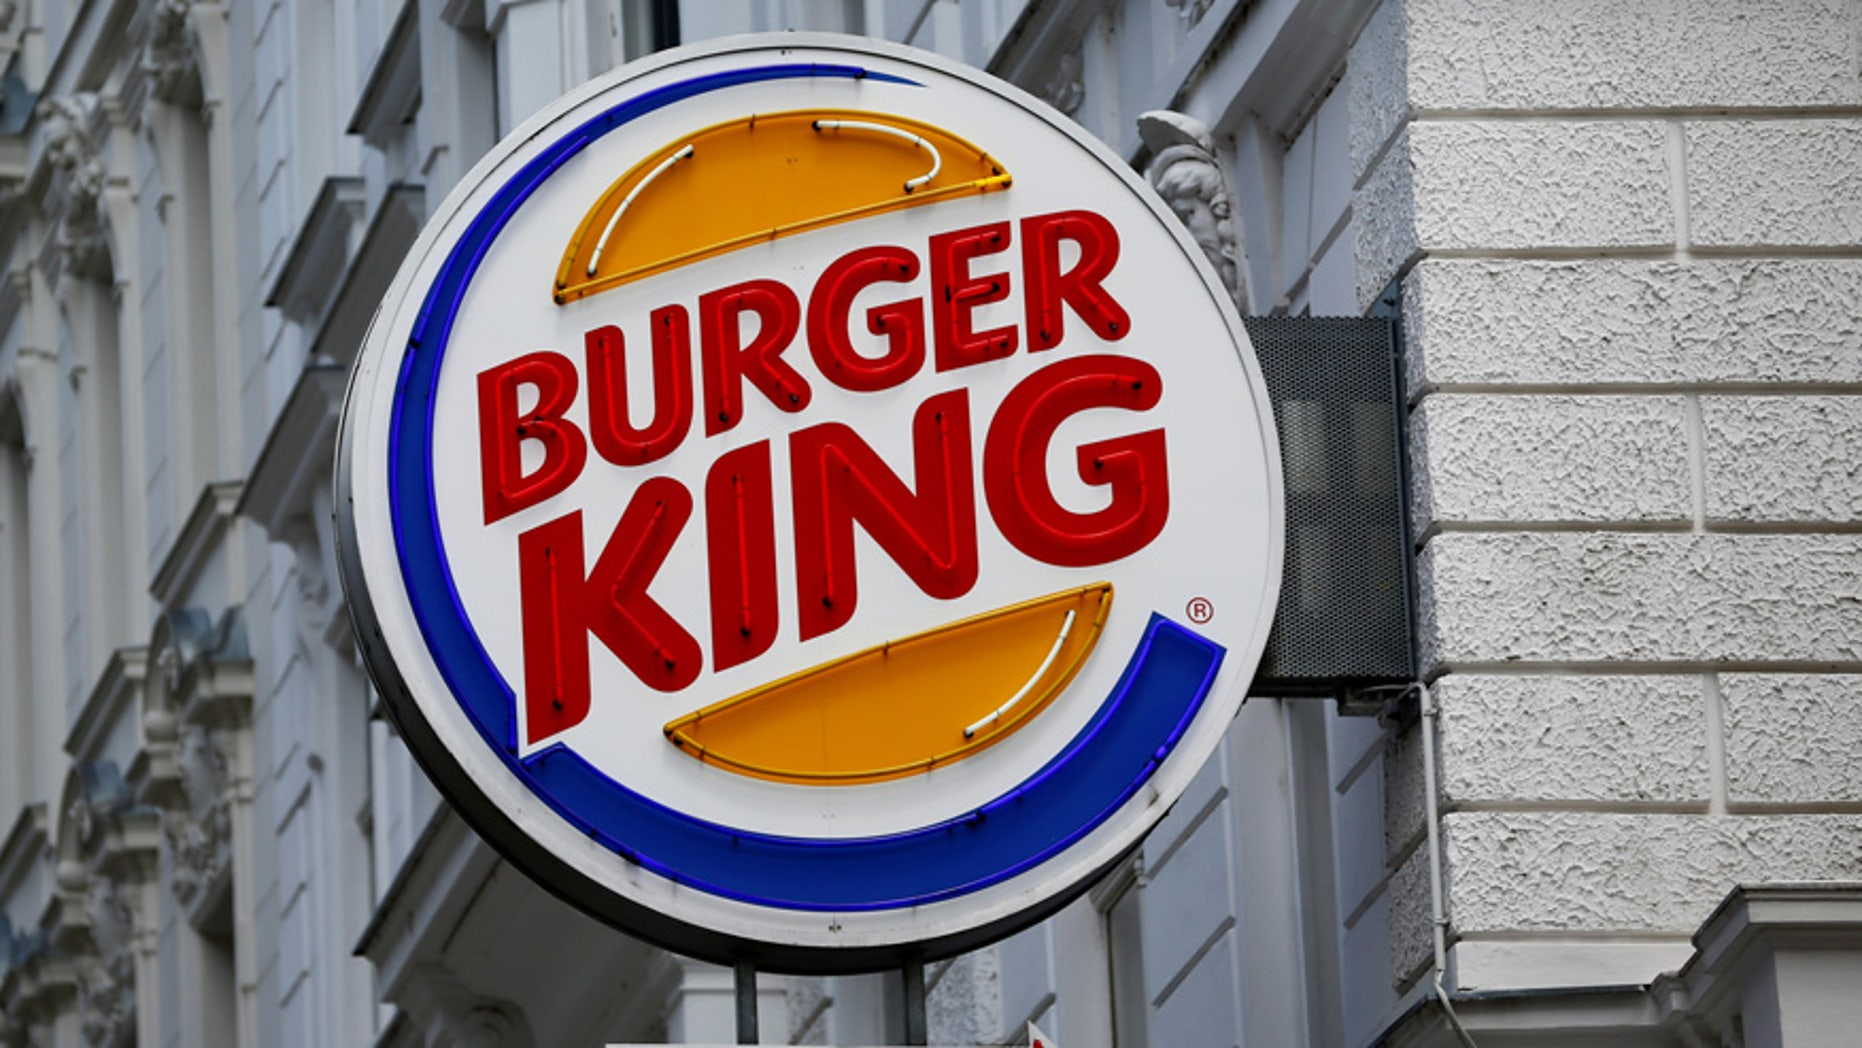 A Burger King sign is seen outside a location in Vienna, Austria.